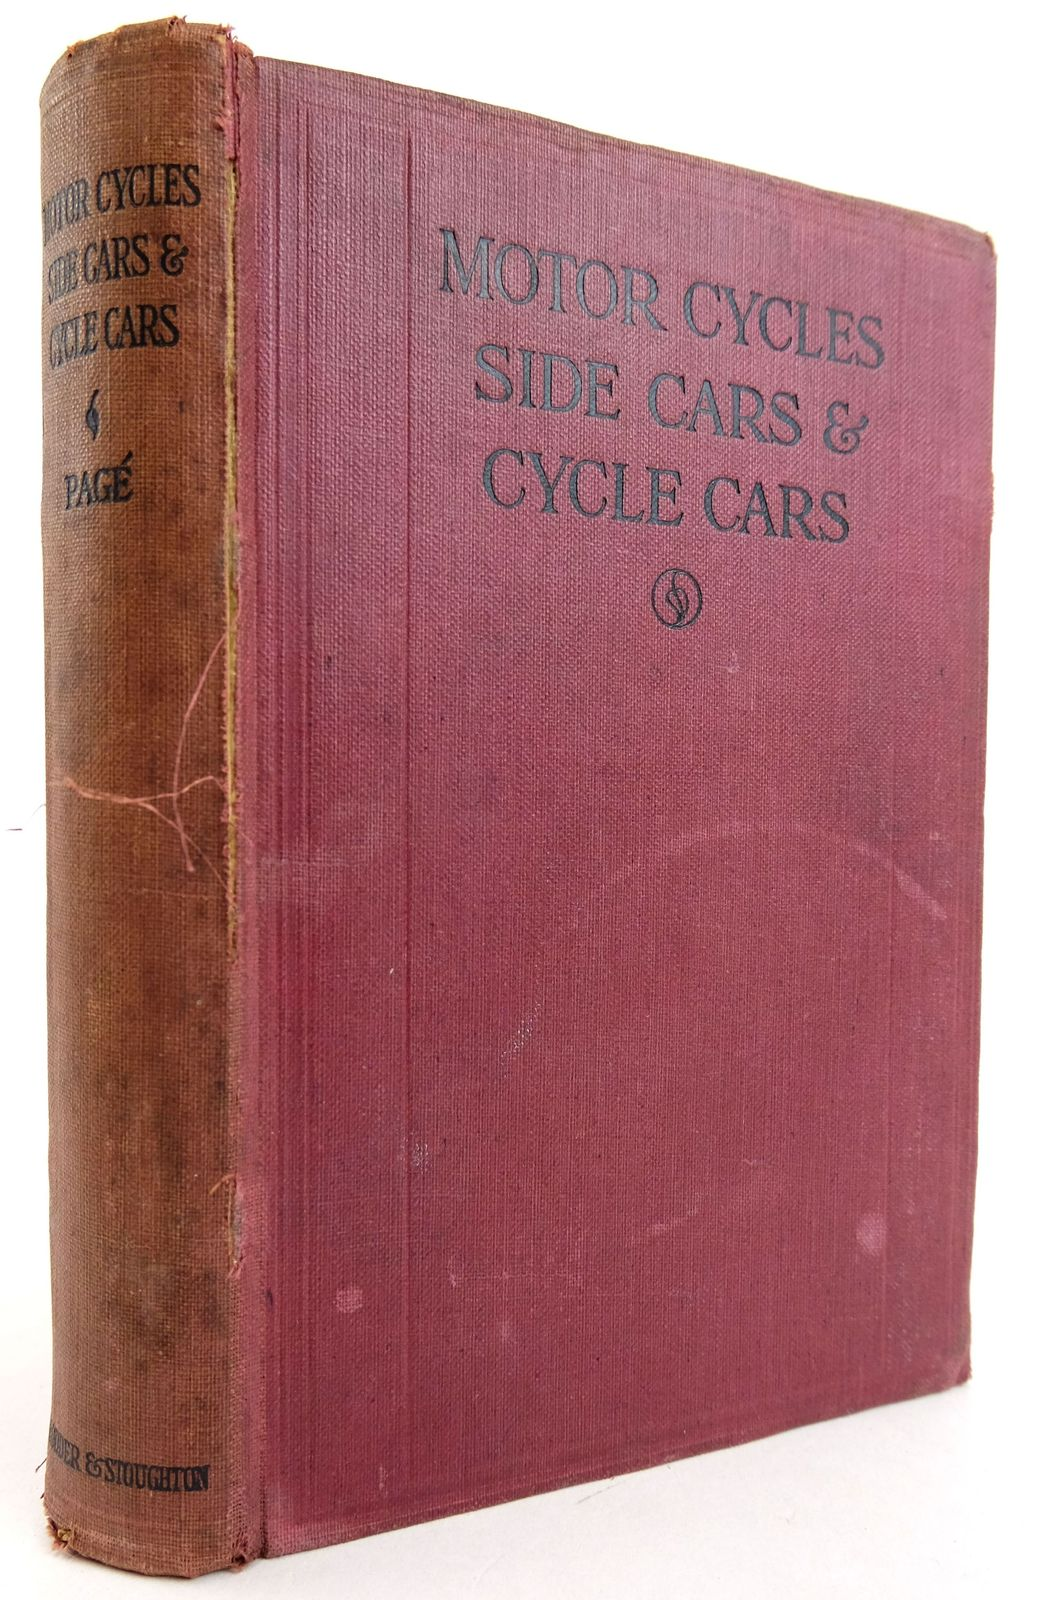 Photo of MOTORCYCLES SIDECARS AND CYCLECARS: CONSTRUCTION, MANAGEMENT, REPAIR- Stock Number: 1819457